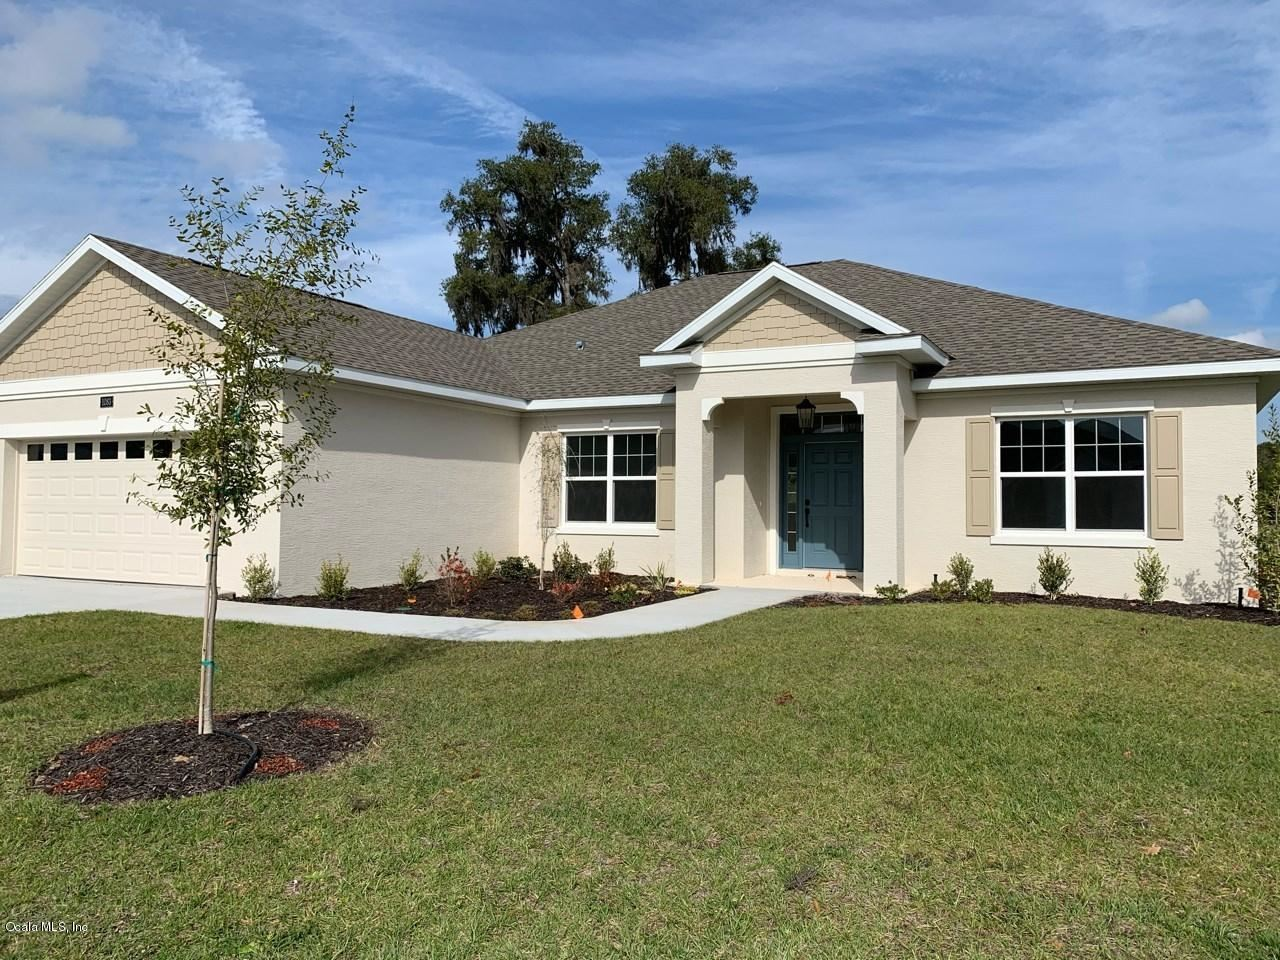 1083 NW 46 Place, Ocala, FL 34475 - MLS#: 561040